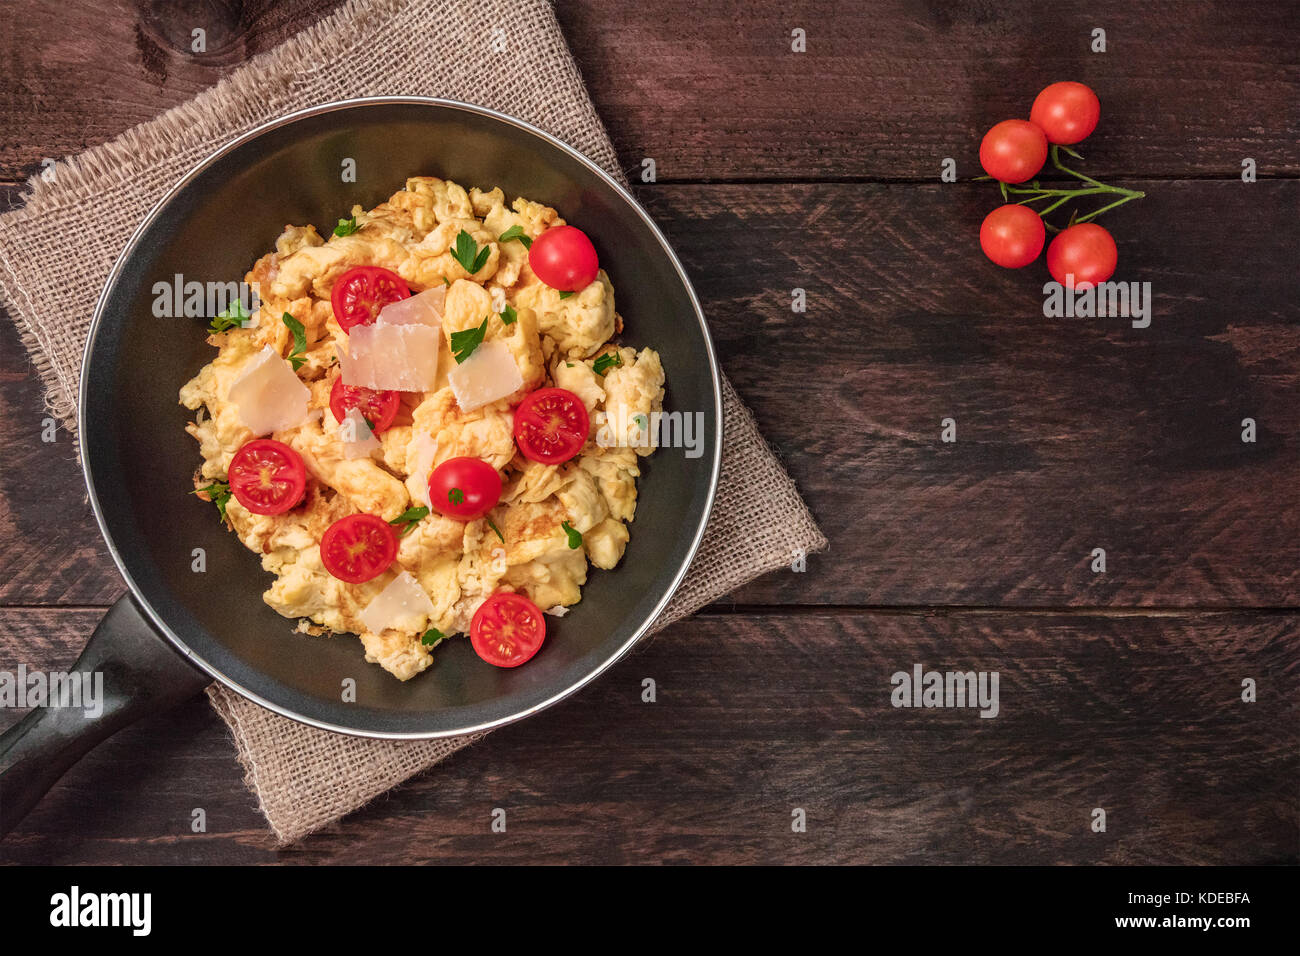 Scrambled eggs in skillet with copy space - Stock Image